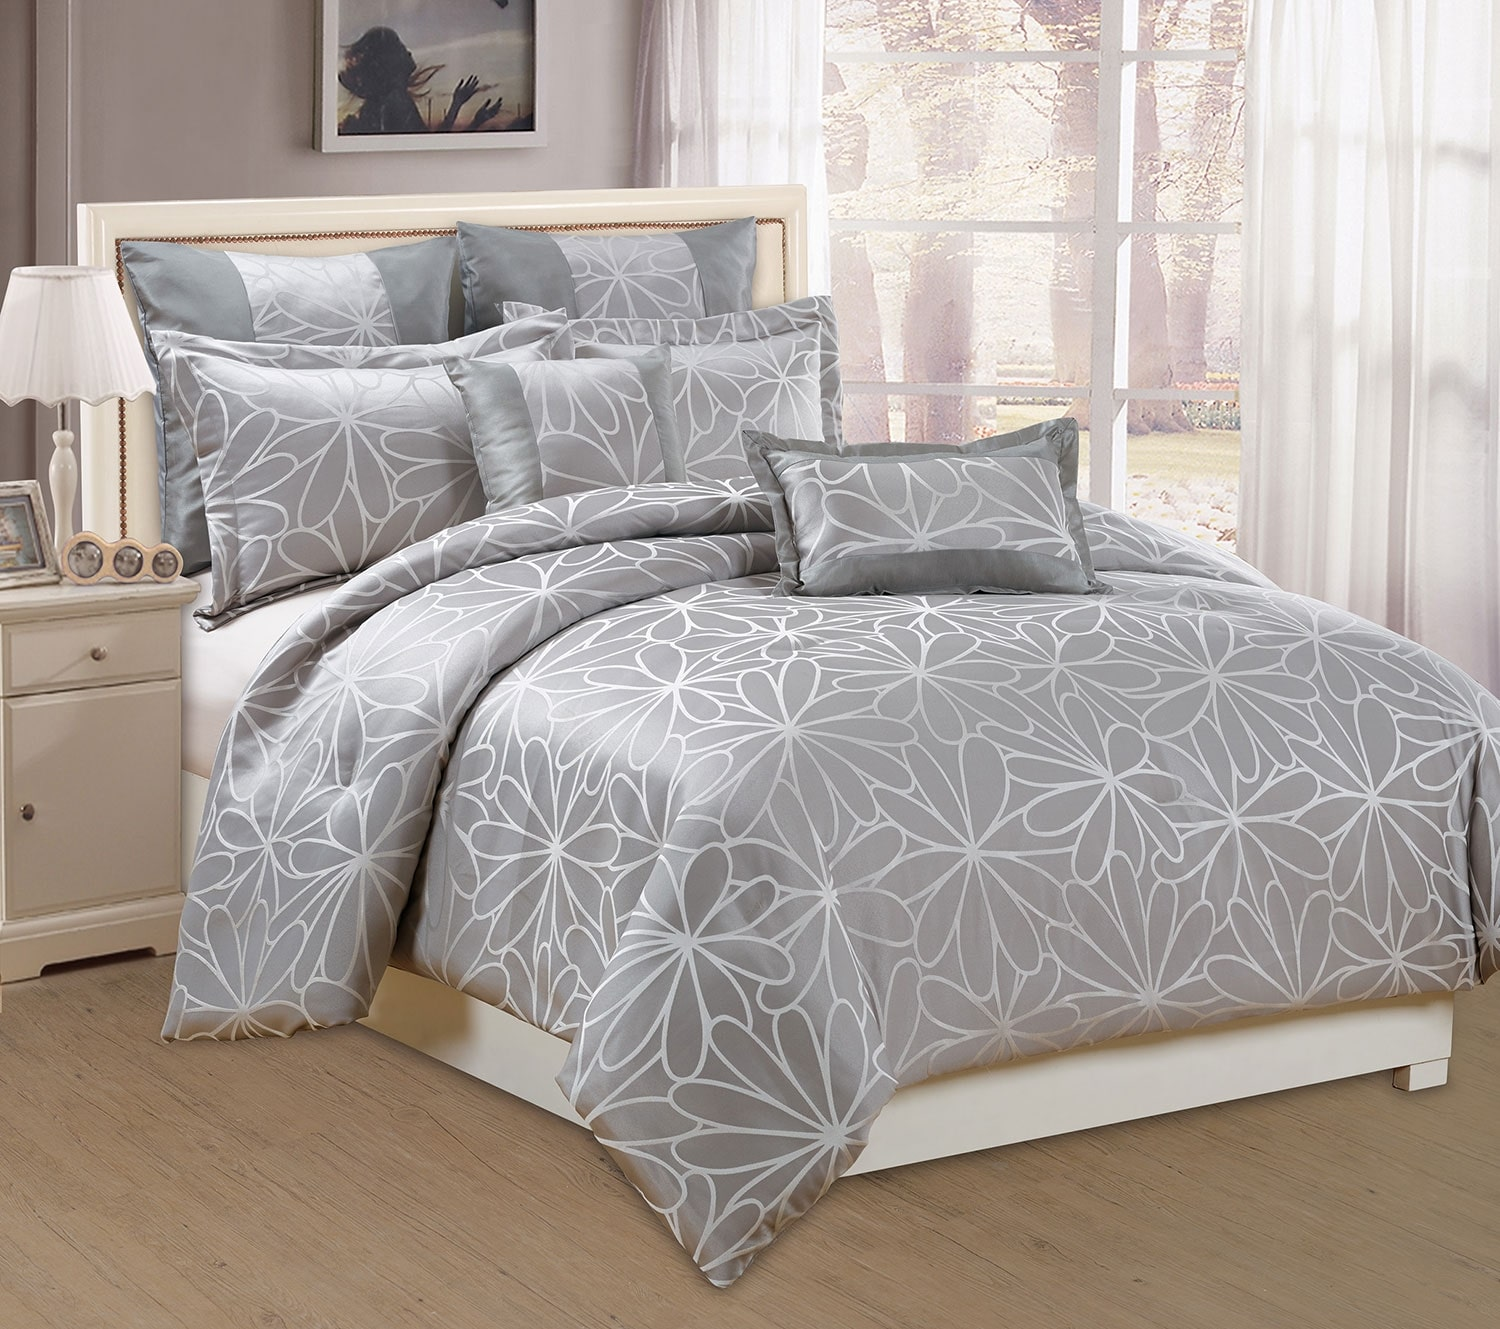 Daisy 7-Piece King Comforter Set